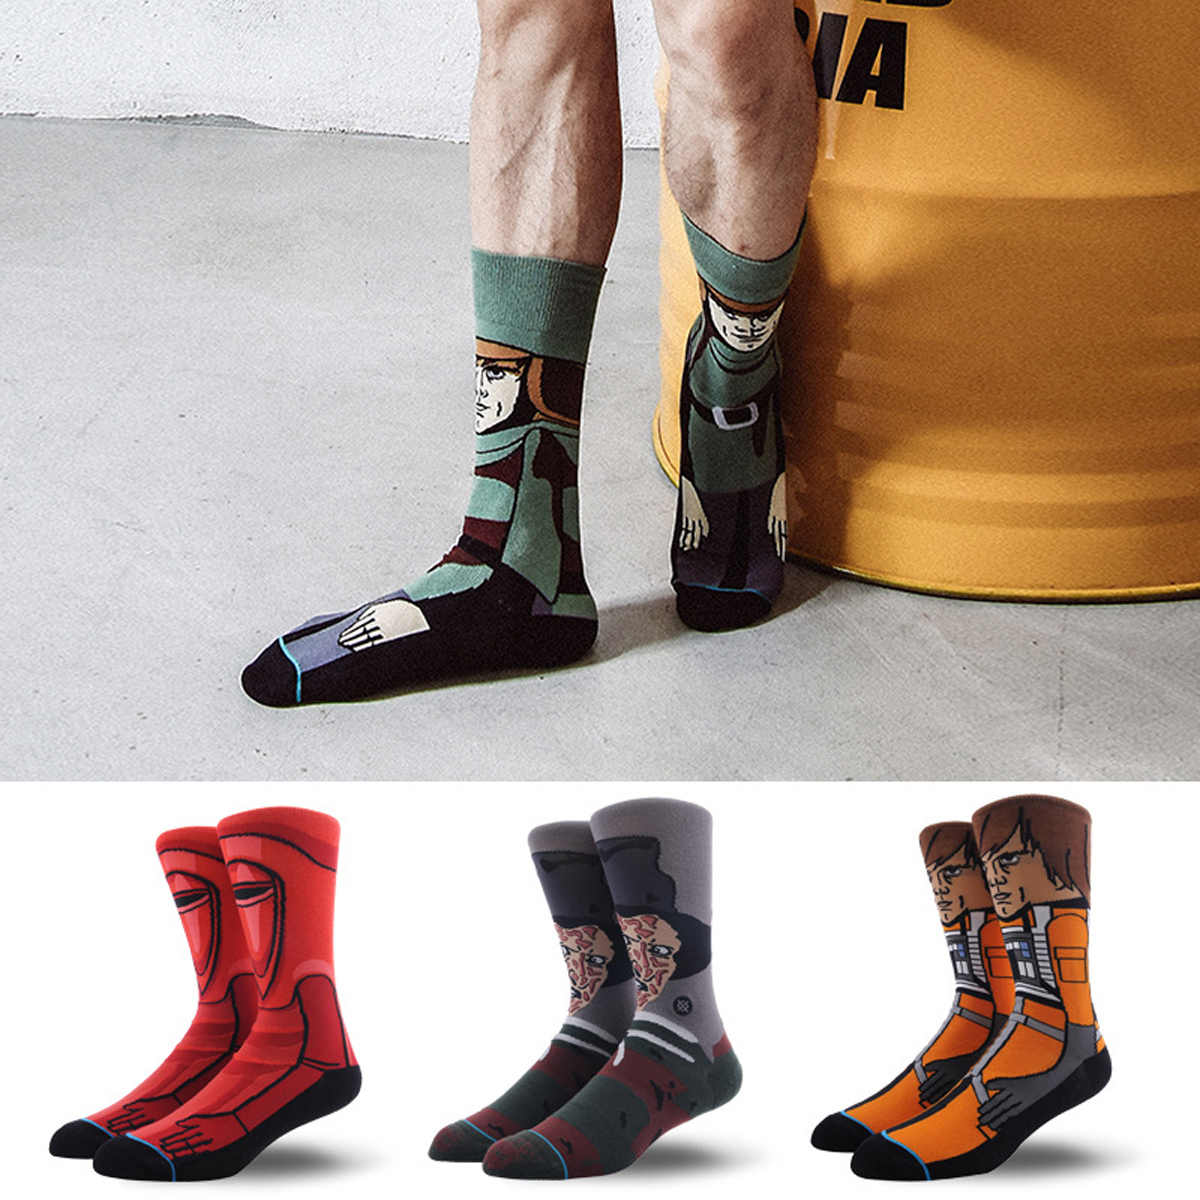 New Star Wars The Last Jedi Funny Cotton Socks Men Women Crew Long Happy Sock Male Winter Polo Warm Cartoon Print Flag Socks